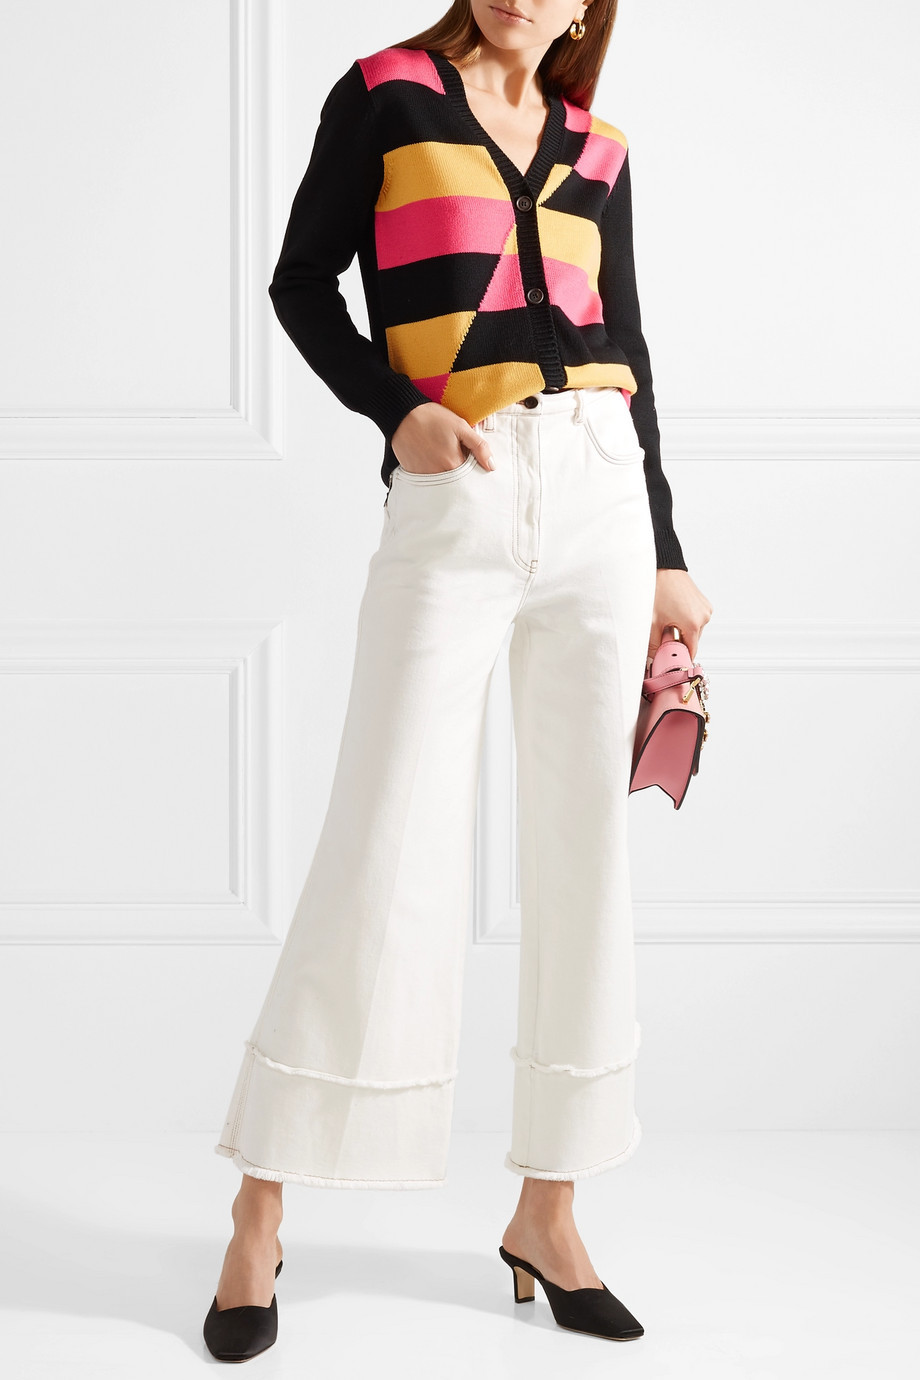 The cardigan and the jeans are on sale the other items that make up the look are are not on sale - But you can click the links below